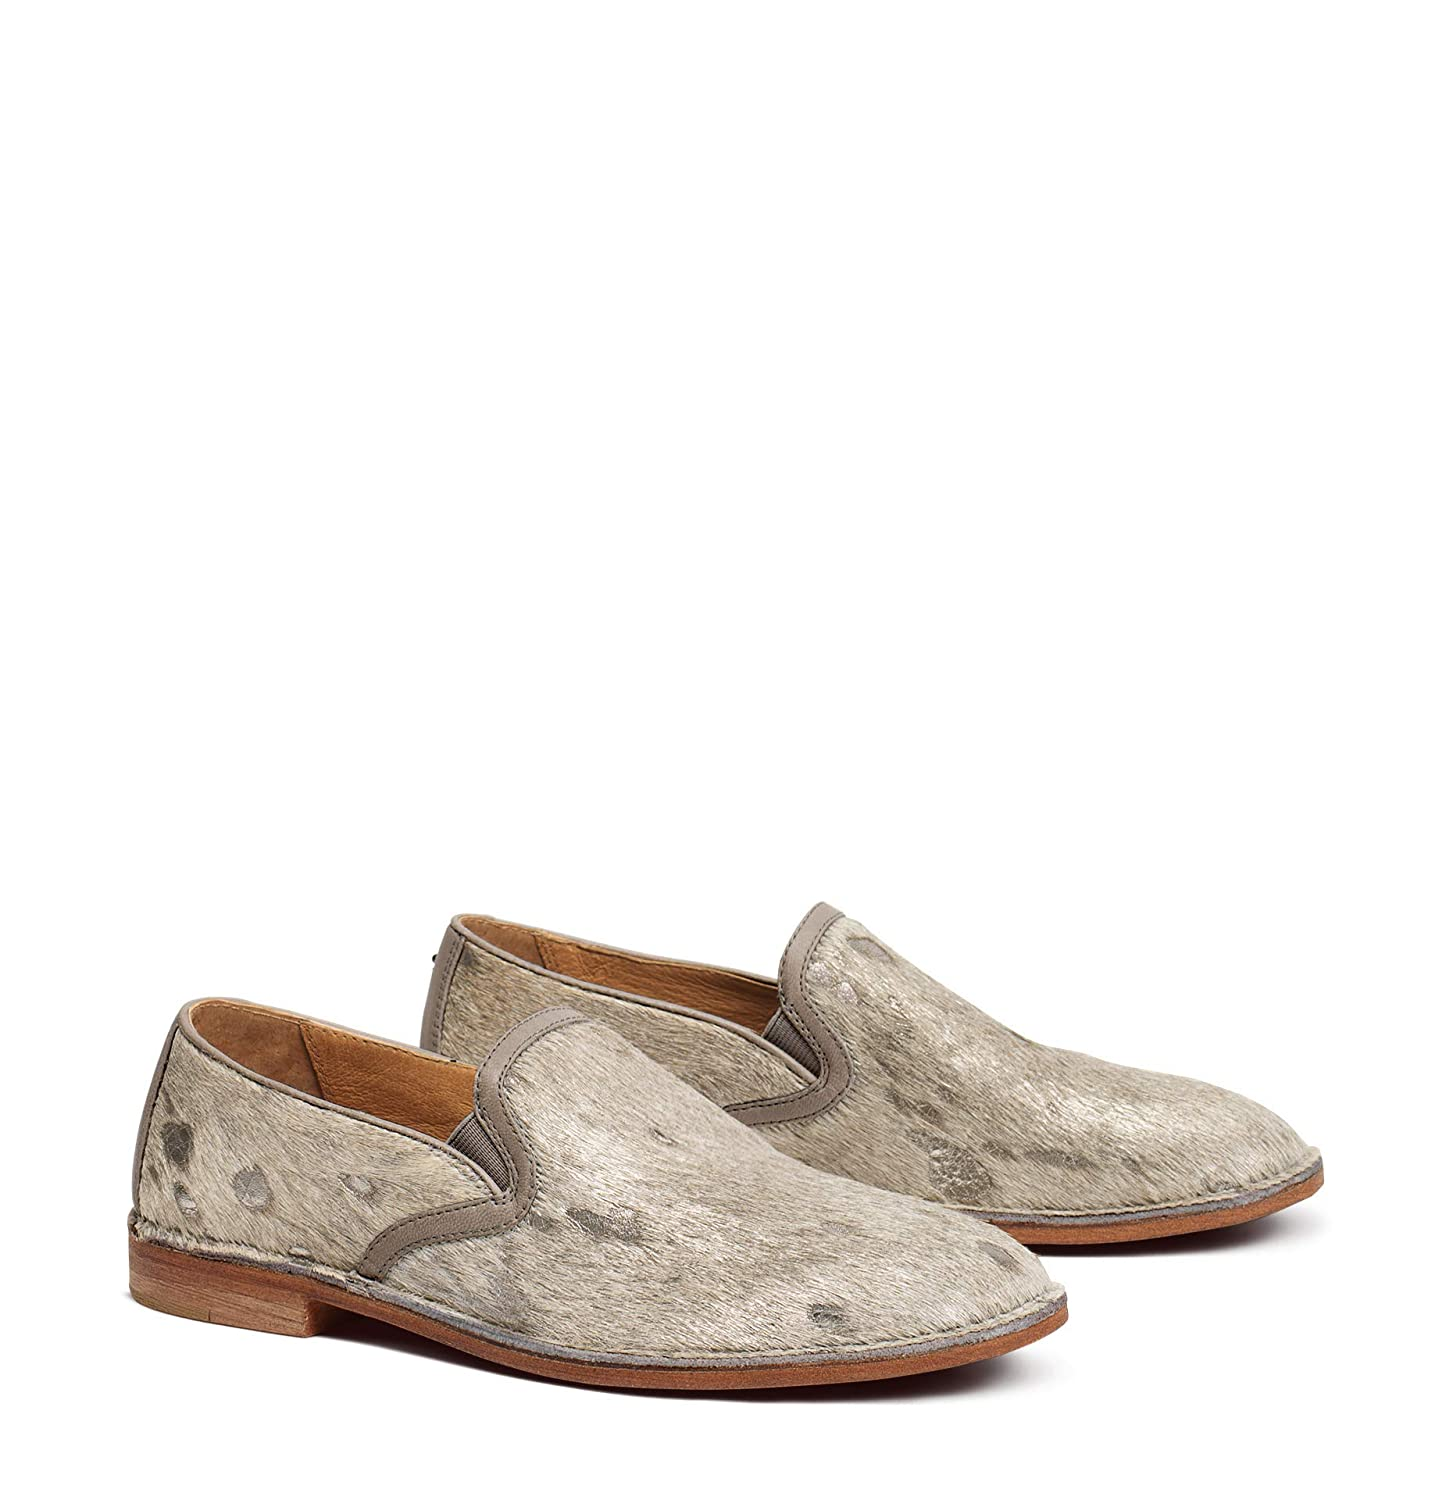 Bone Acid-washed Metallic Haircalf Trask Womens Ali Round Toe Loafers